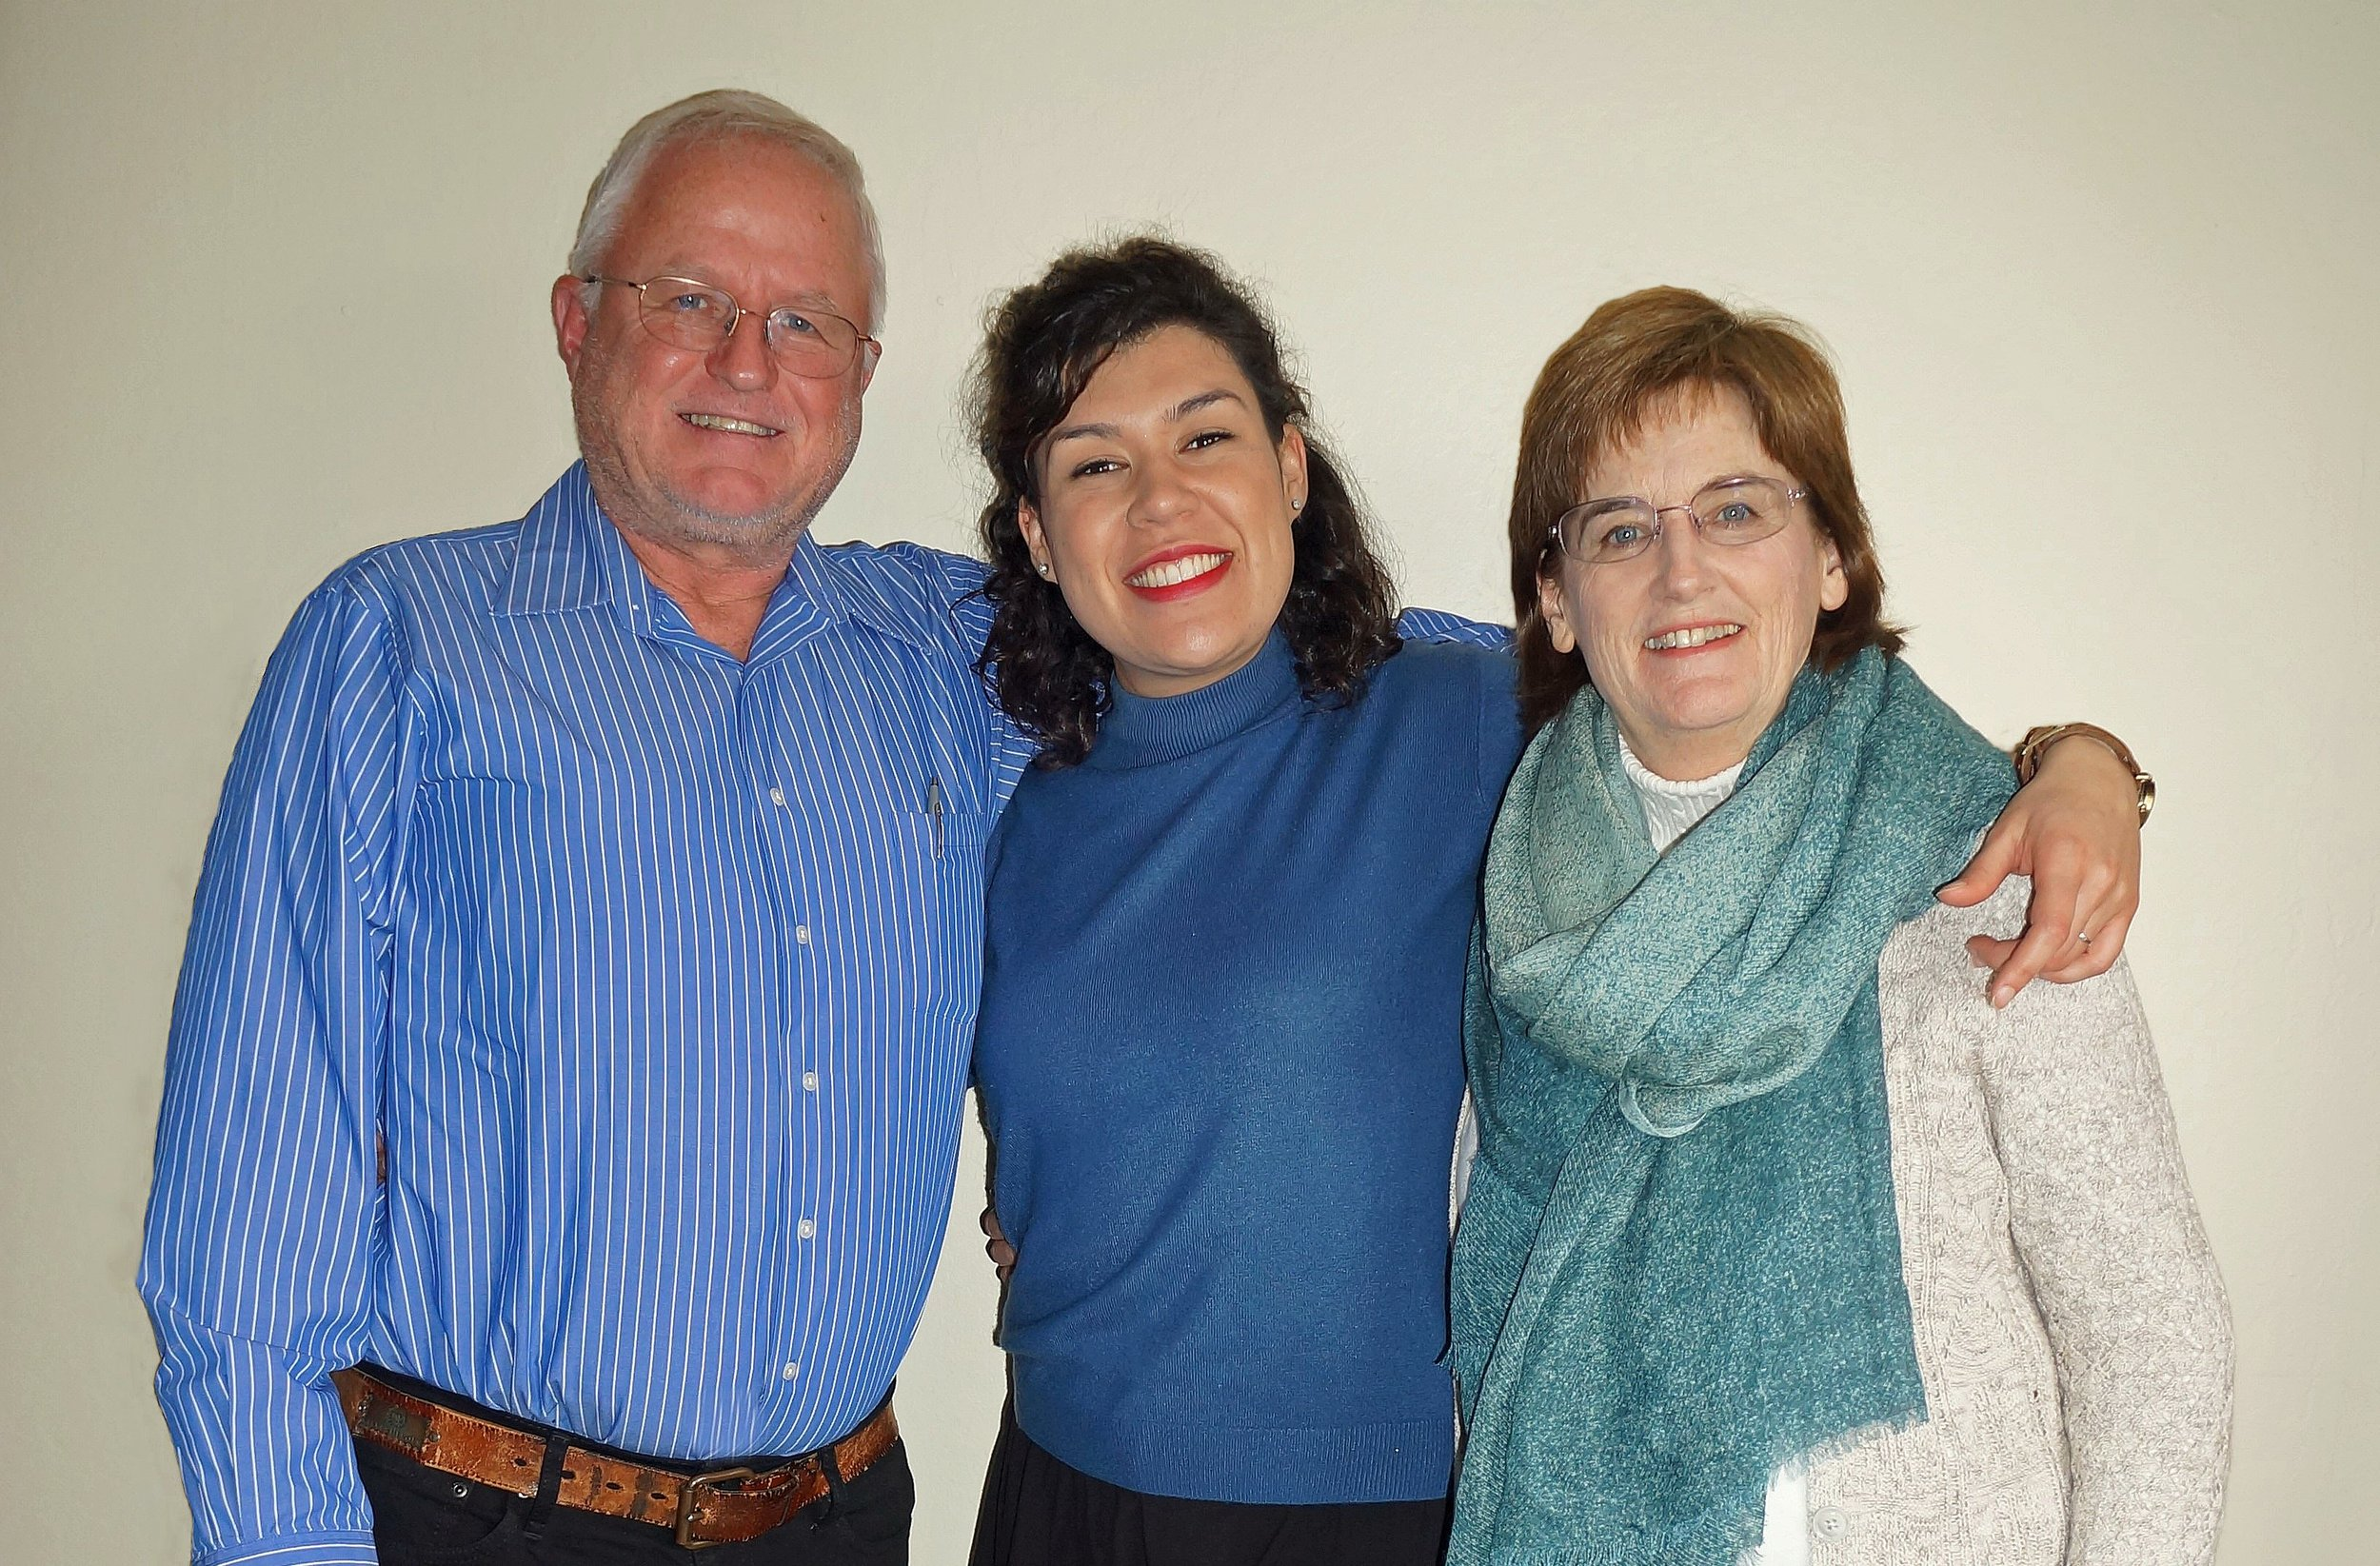 Christine with her husband and daughter.